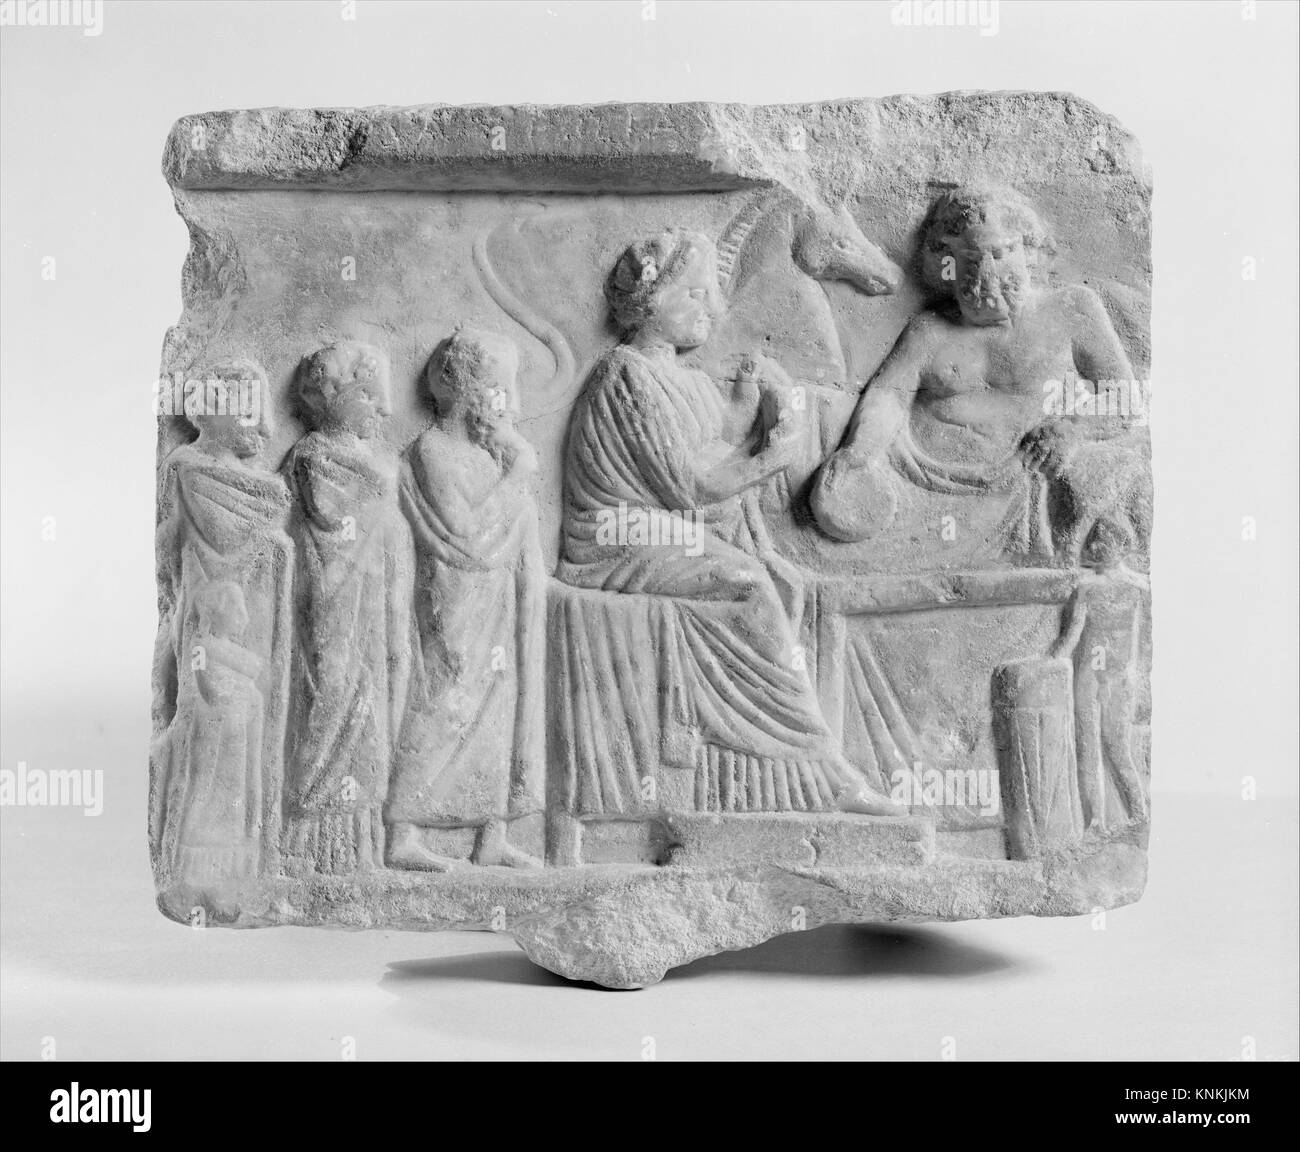 Marble votive relief dedicated to a hero. Period: Late Classical; Date: late 4th century B.C; Culture: Greek, Attic; - Stock Image